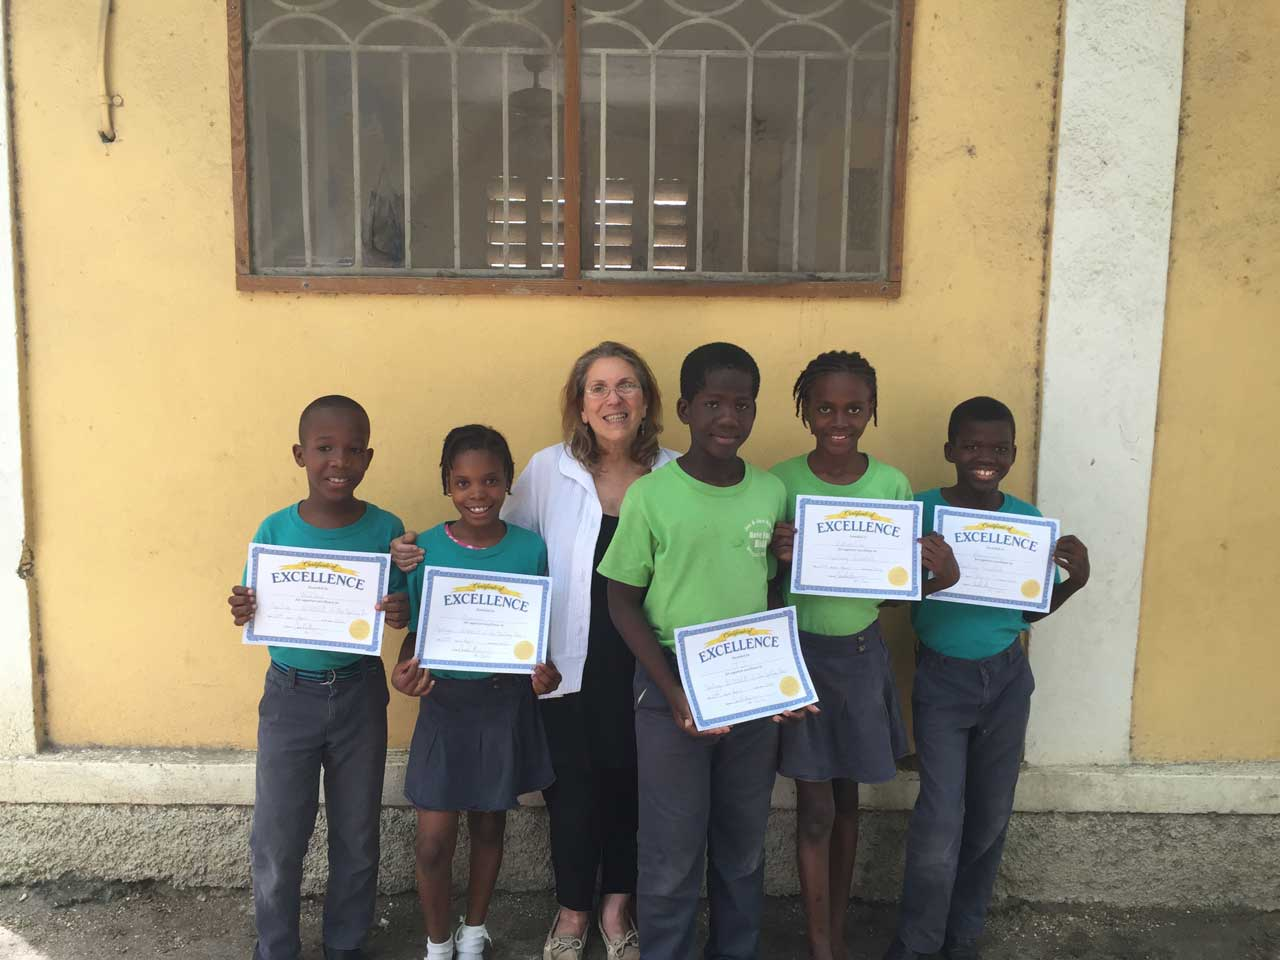 Have Faith Haiti Spelling Bee April 2016 -2